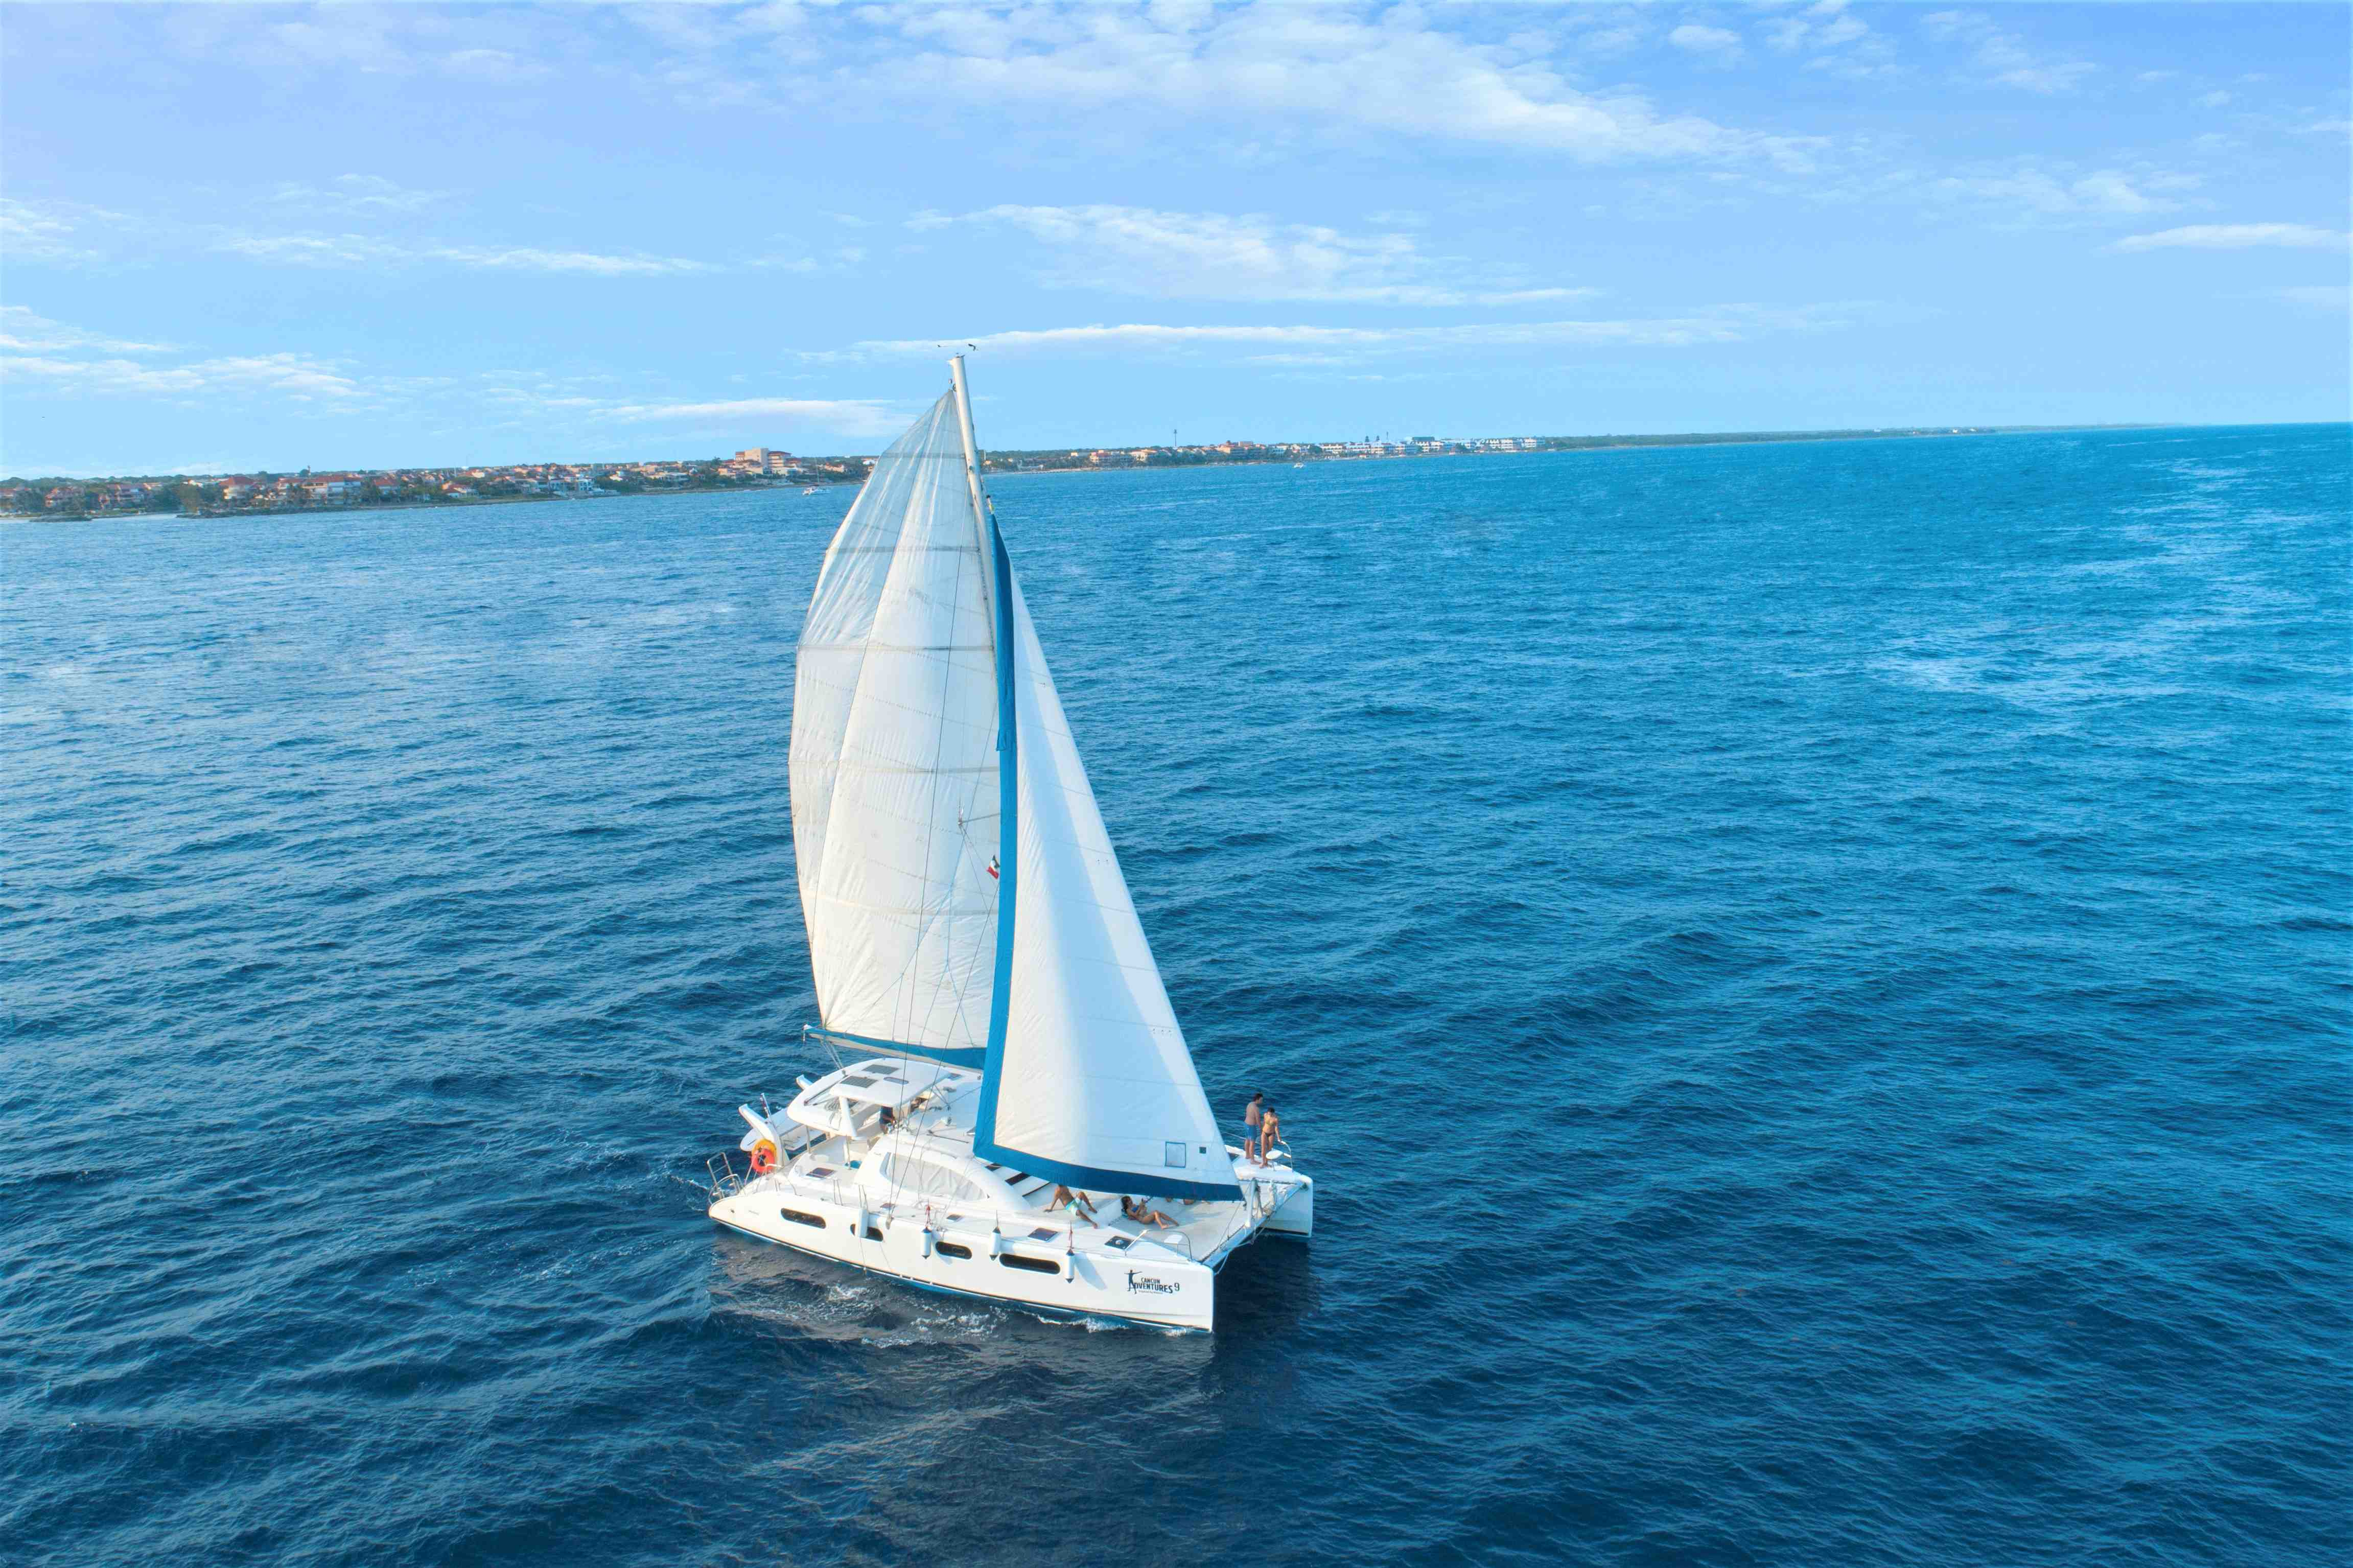 Luxury Sailing In Riviera Maya - Last Minute Tours in Cancún and Riviera Maya